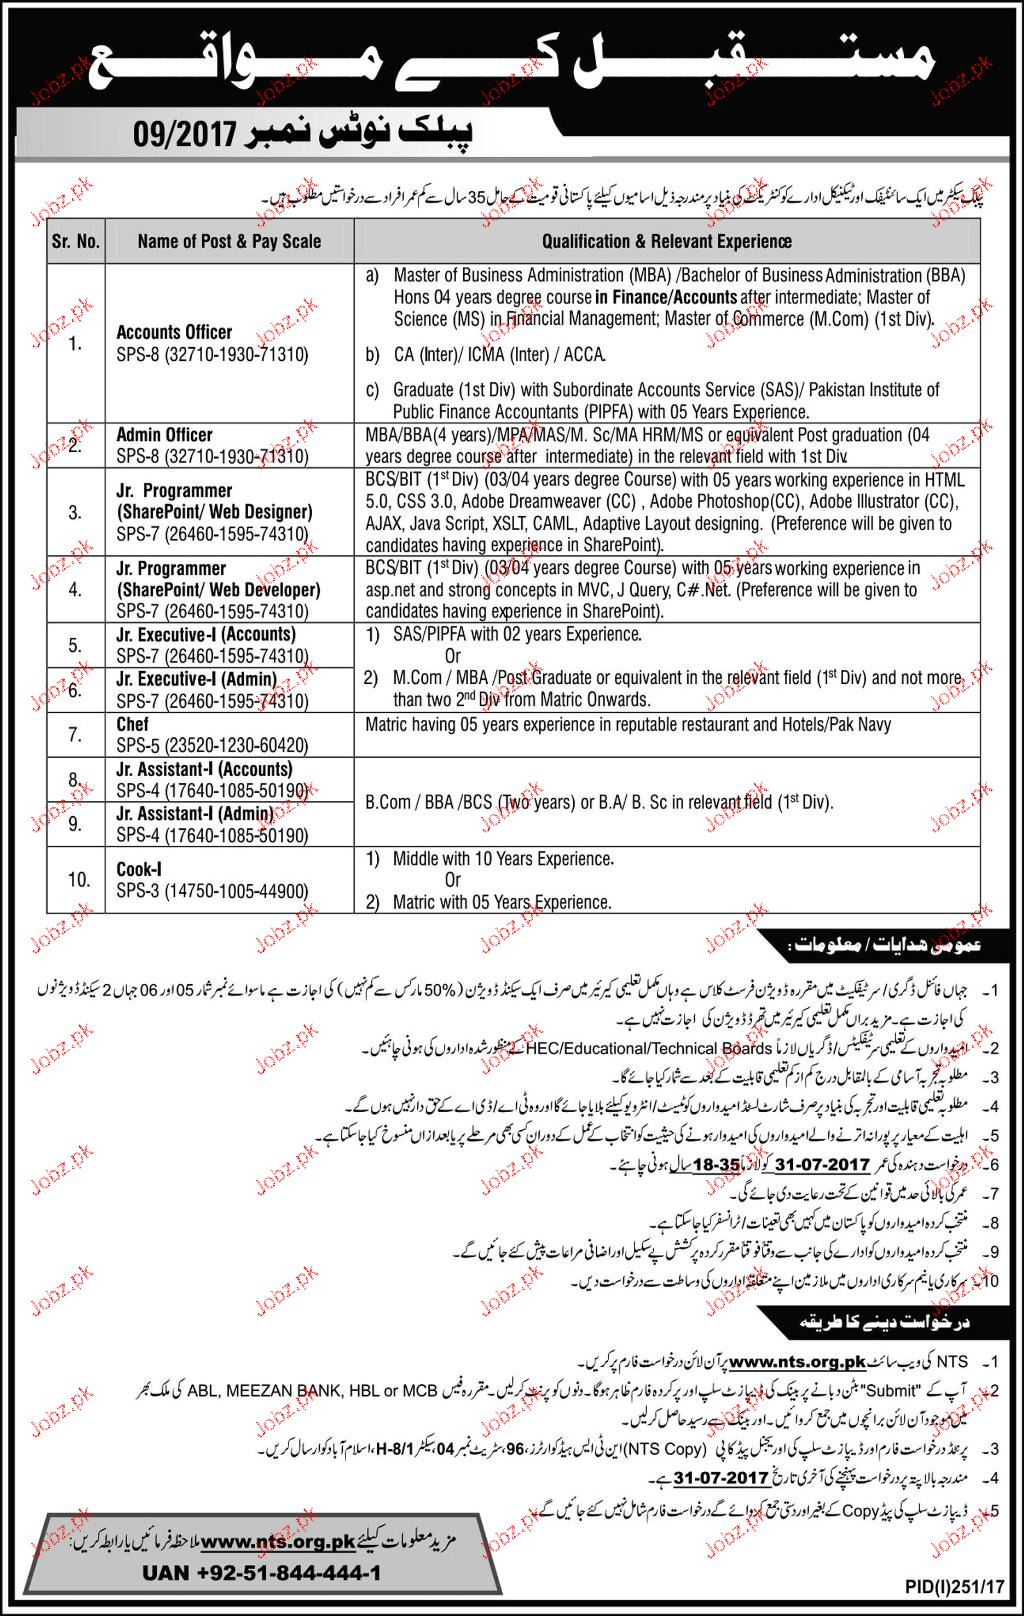 Public Sector Organization Jobs Through NTS